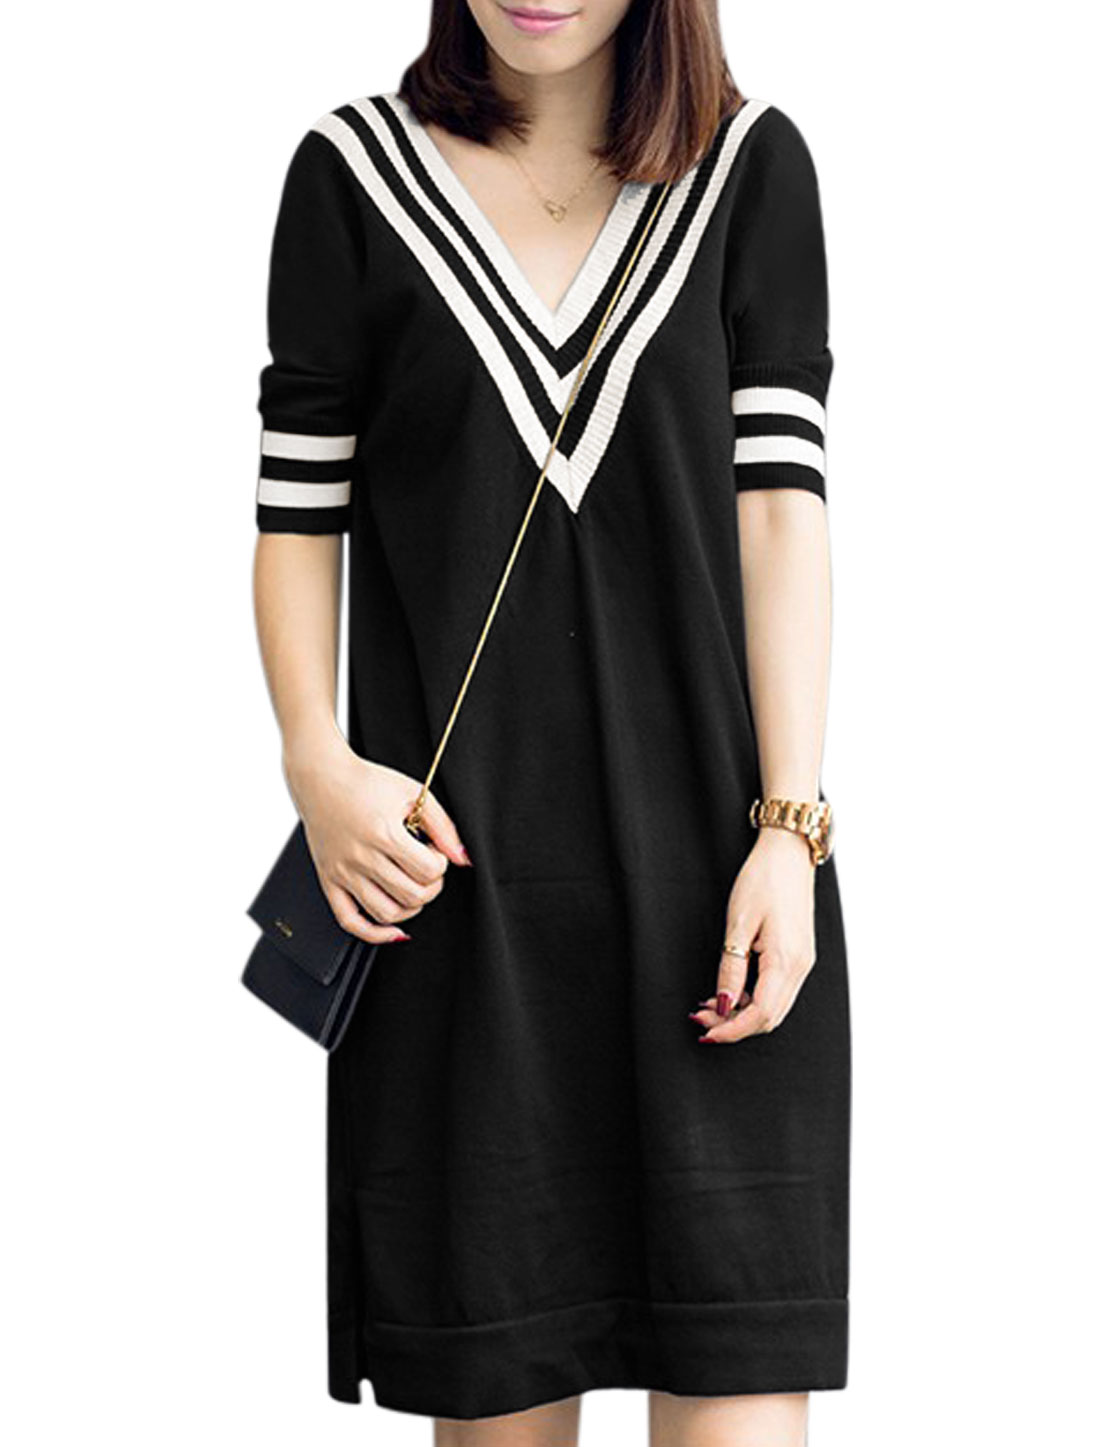 Woman Stripes Detail V Neck Elbow Sleeves Knitted Dress Black S